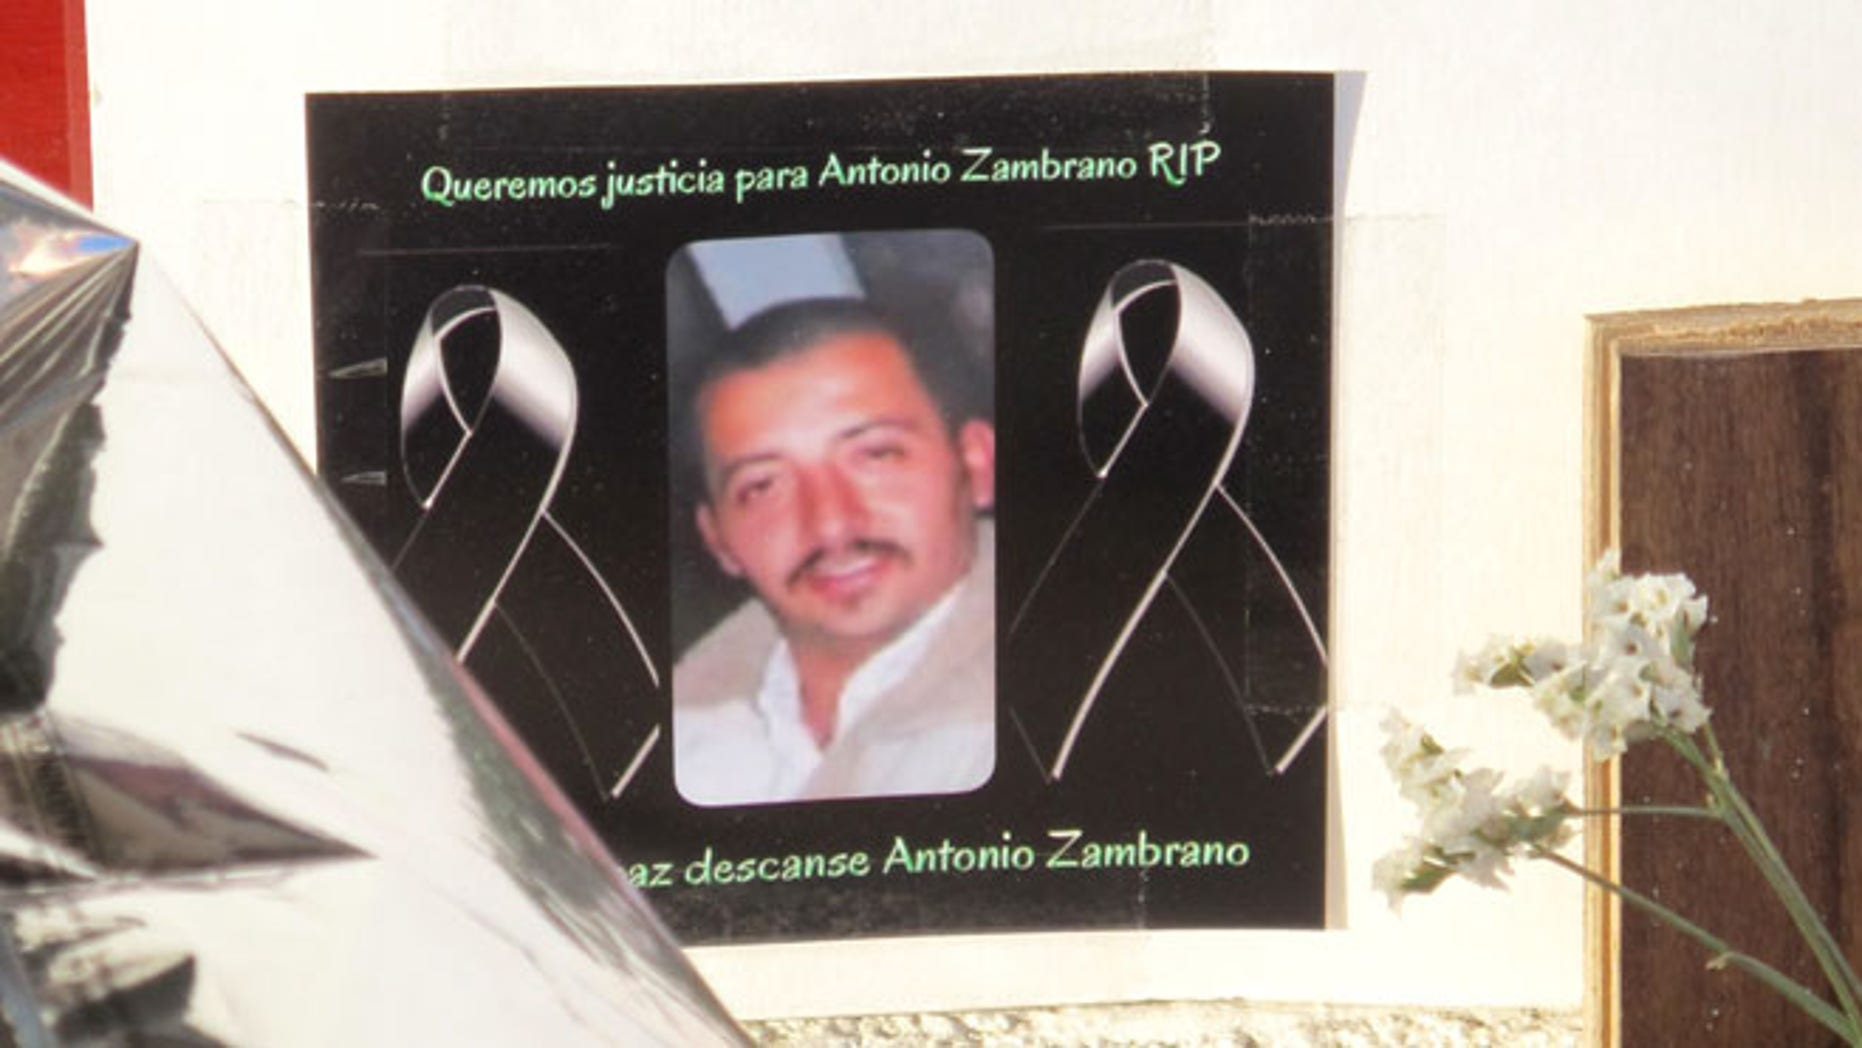 A photo of Antonio Zambrano-Montes displayed at a memorial in Pasco, Wash. on Feb. 19, 2015.